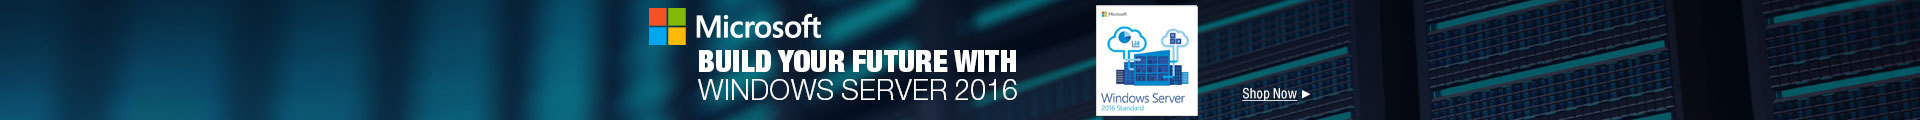 Build Your Future with Windows Server 2016